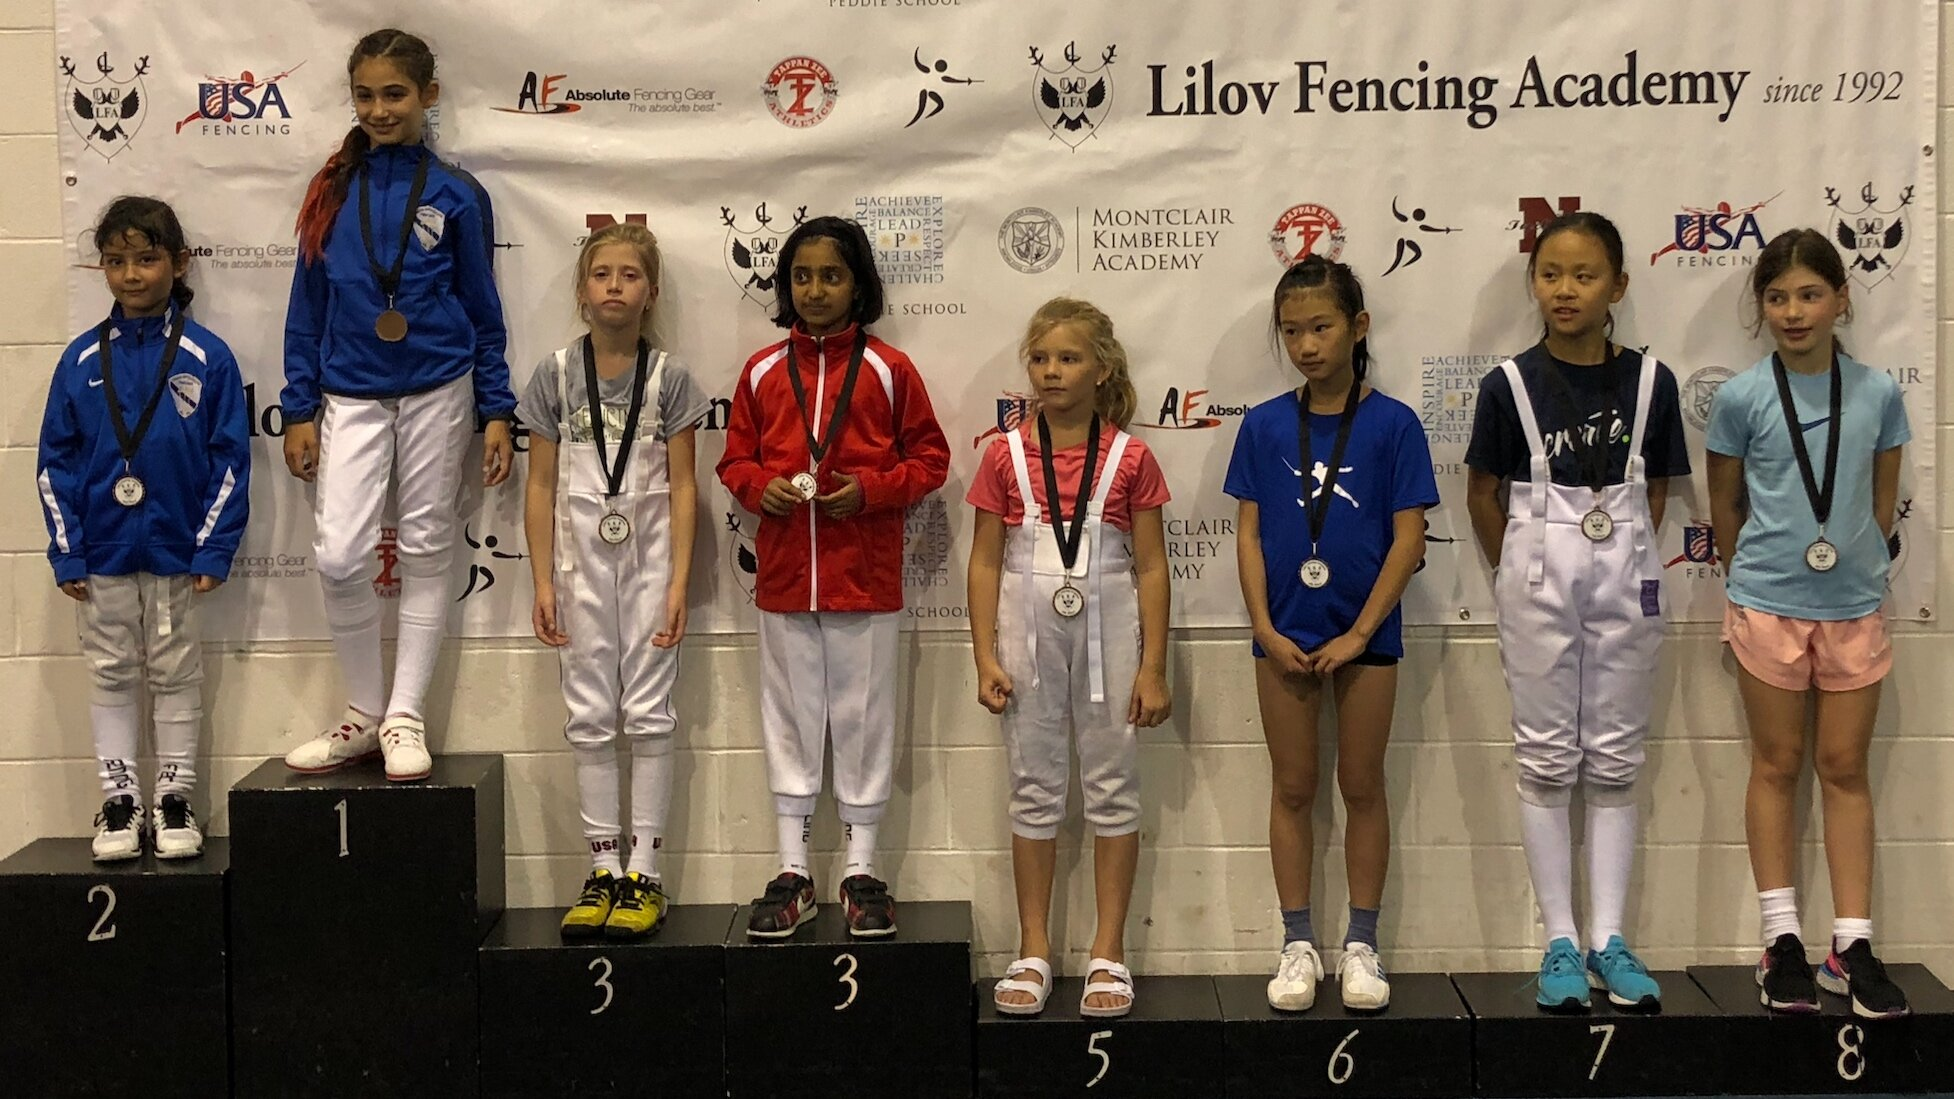 ALBERT CHIKAYEV MEMORIAL RYC  Sara Amr Hossny 1st place Y10 Womens Foil Emily Cascone 2nd place Y10 Womens Foil Mariia Yurkova 3rd place Y10 Womens Foil  September 14th 2019